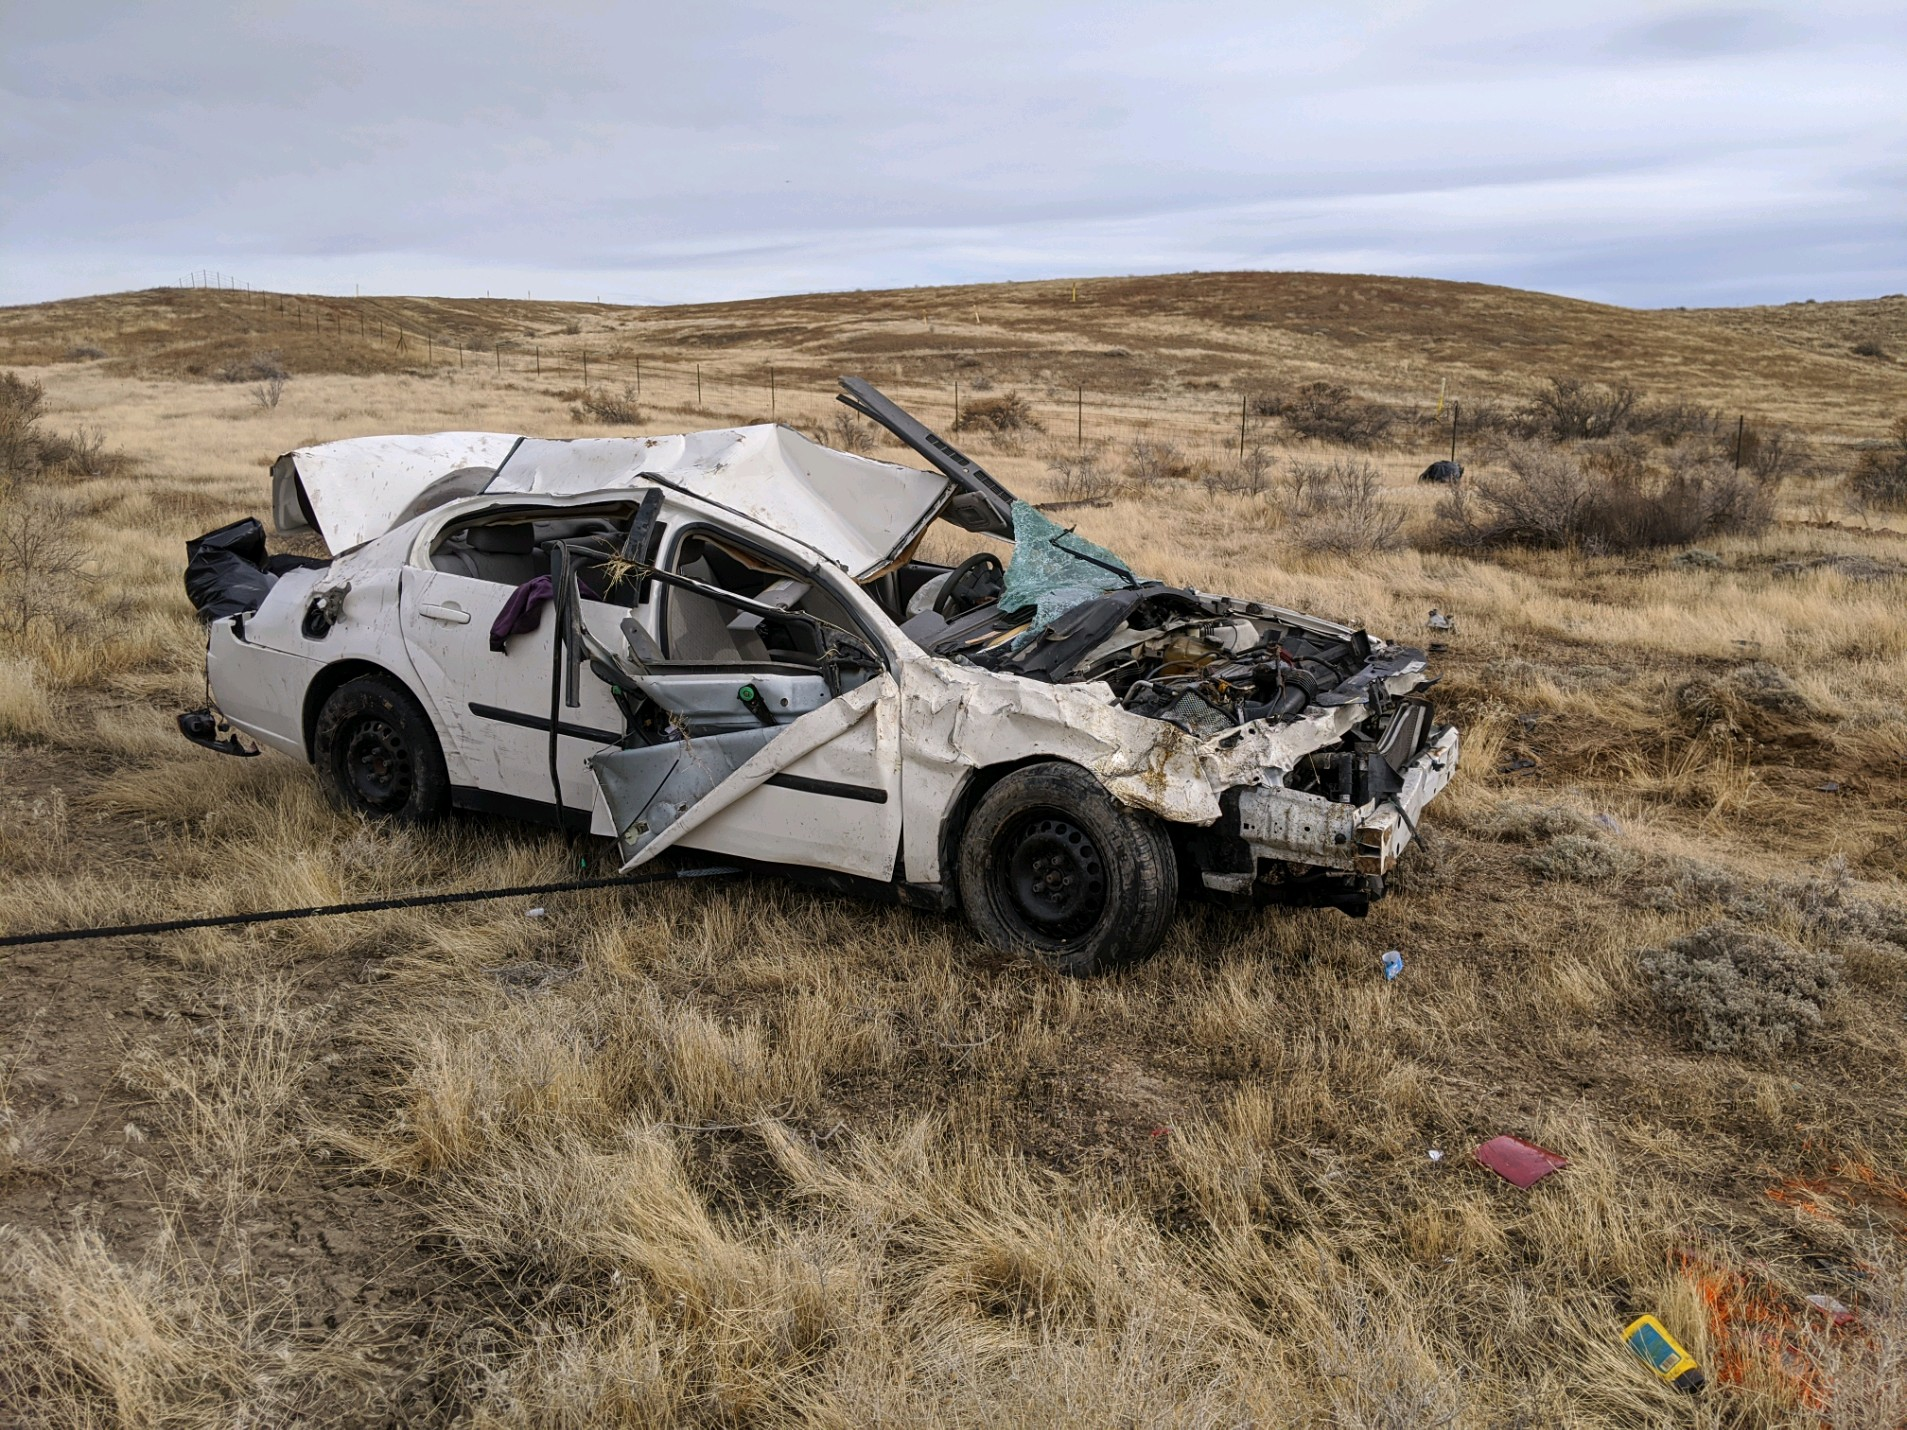 One dead, another injured after crash near Utah - Colorado